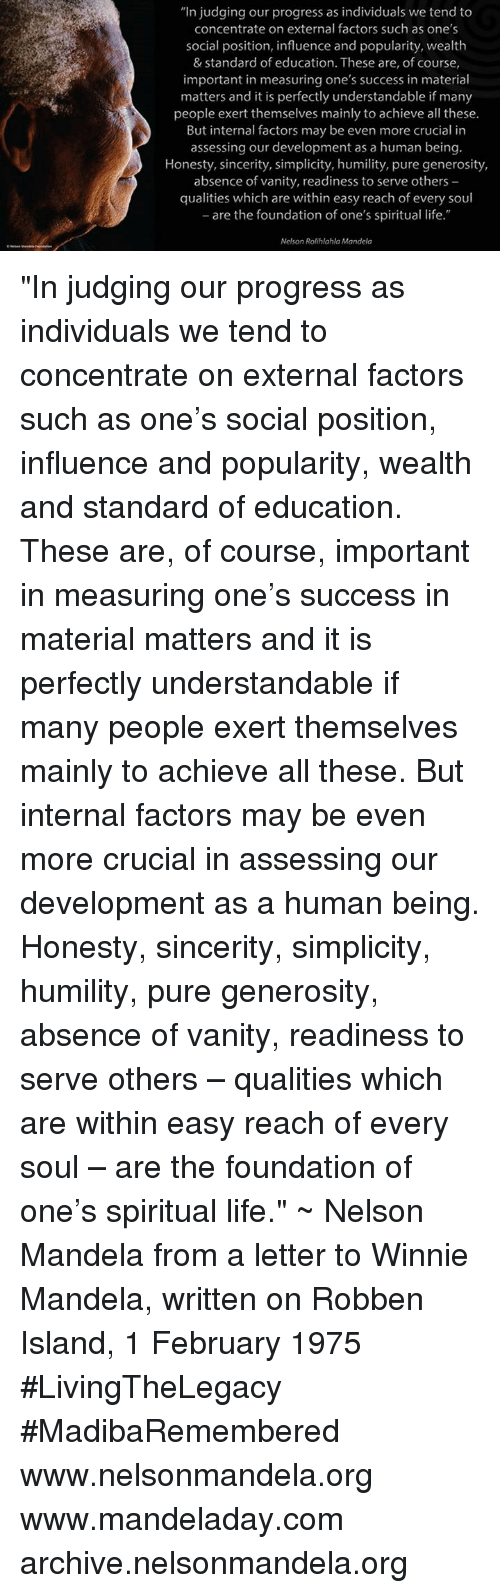 """winny: """"In judging our progress as individuals we tend to  concentrate on external factors such as one's  social position, influence and popularity, wealth  & Standard of education. These are, of course,  important in measuring one's success in material  matters and it is perfectly understandable if many  people exert themselves mainly to achieve all these.  But internal factors may be even more crucial in  assessing our development as a human being.  Honesty, sincerity, simplicity, humility, pure generosity,  absence of vanity, readiness to serve others  qualities which are within easy reach of every soul  -are the foundation of one's spiritual life.""""  Nelson Rolihlahla Mandela """"In judging our progress as individuals we tend to concentrate on external factors such as one's social position, influence and popularity, wealth and standard of education. These are, of course, important in measuring one's success in material matters and it is perfectly understandable if many people exert themselves mainly to achieve all these. But internal factors may be even more crucial in assessing our development as a human being. Honesty, sincerity, simplicity, humility, pure generosity, absence of vanity, readiness to serve others – qualities which are within easy reach of every soul – are the foundation of one's spiritual life."""" ~ Nelson Mandela from a letter to Winnie Mandela, written on Robben Island, 1 February 1975 #LivingTheLegacy #MadibaRemembered   www.nelsonmandela.org www.mandeladay.com archive.nelsonmandela.org"""